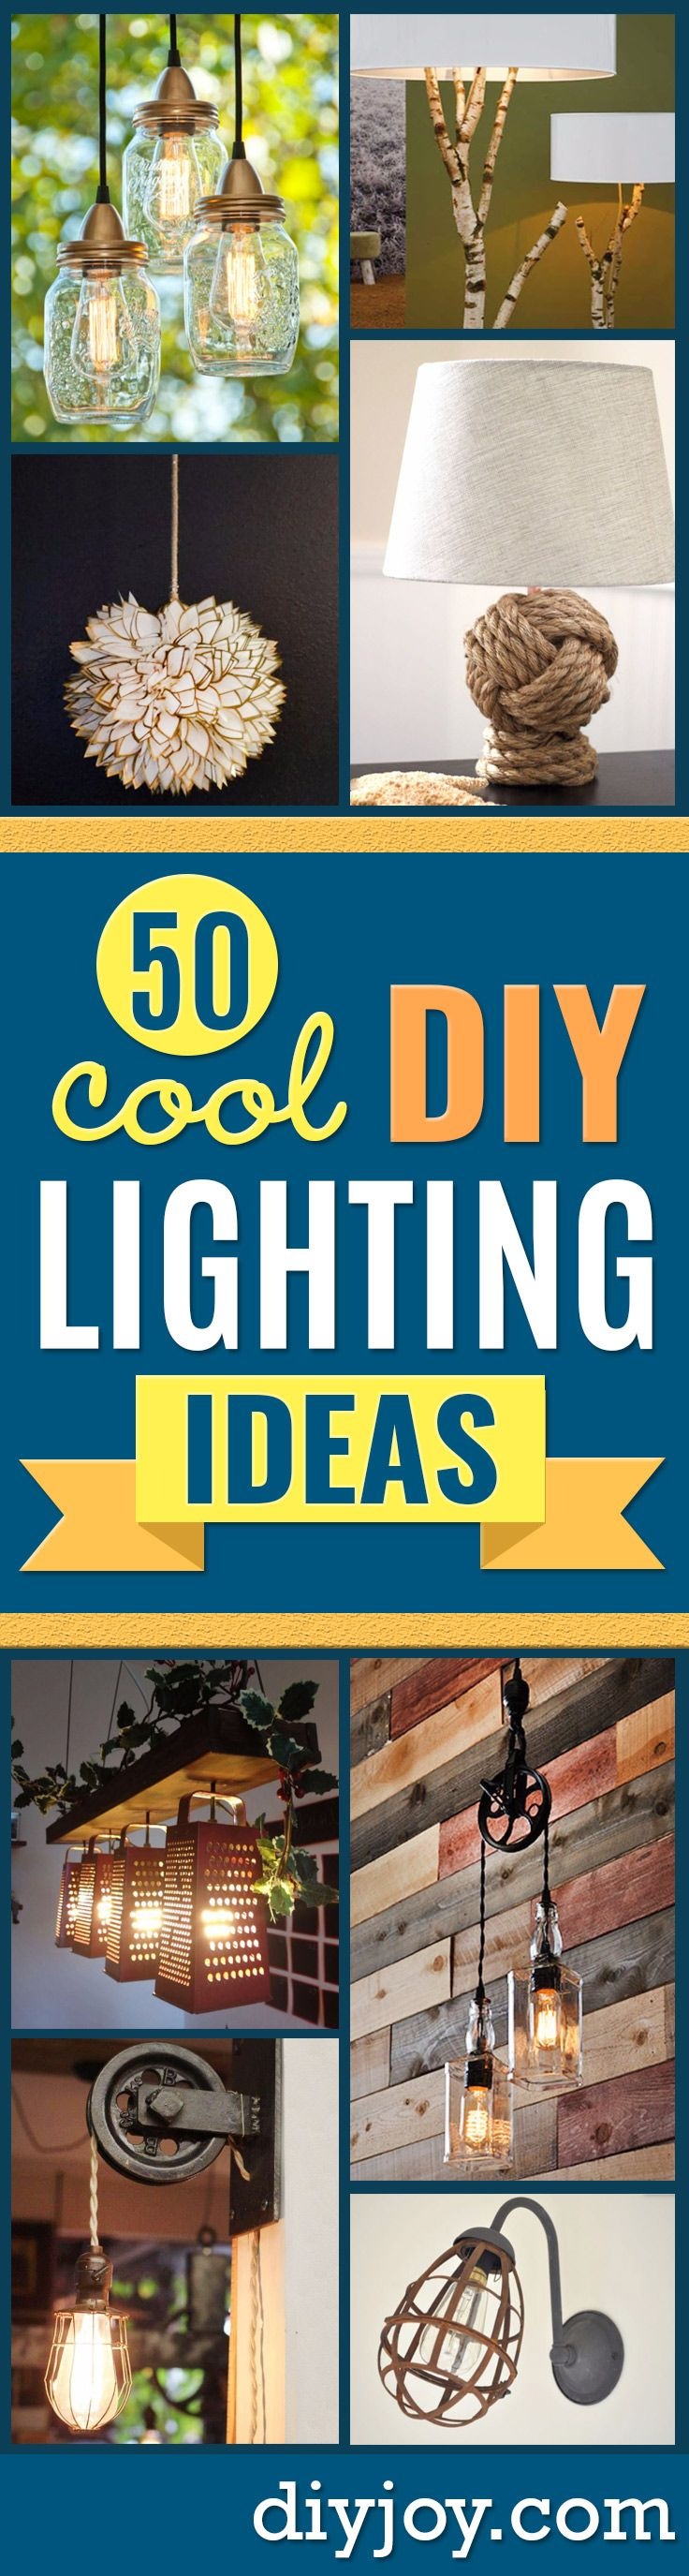 DIY Lighting Ideas and Cool DIY Light Projects for the Home - Easy DIY Ideas for Chandeliers, lights, lamps, awesome pendants and creative hanging fixtures, complete with tutorials with instructions. Cheap do it yourself lighting tutorials for indoor - bedroom, living room, bathroom, kitchen DIY Projects and Crafts for Women and Men http://diyjoy.com/diy-indoor-lighting-ideas